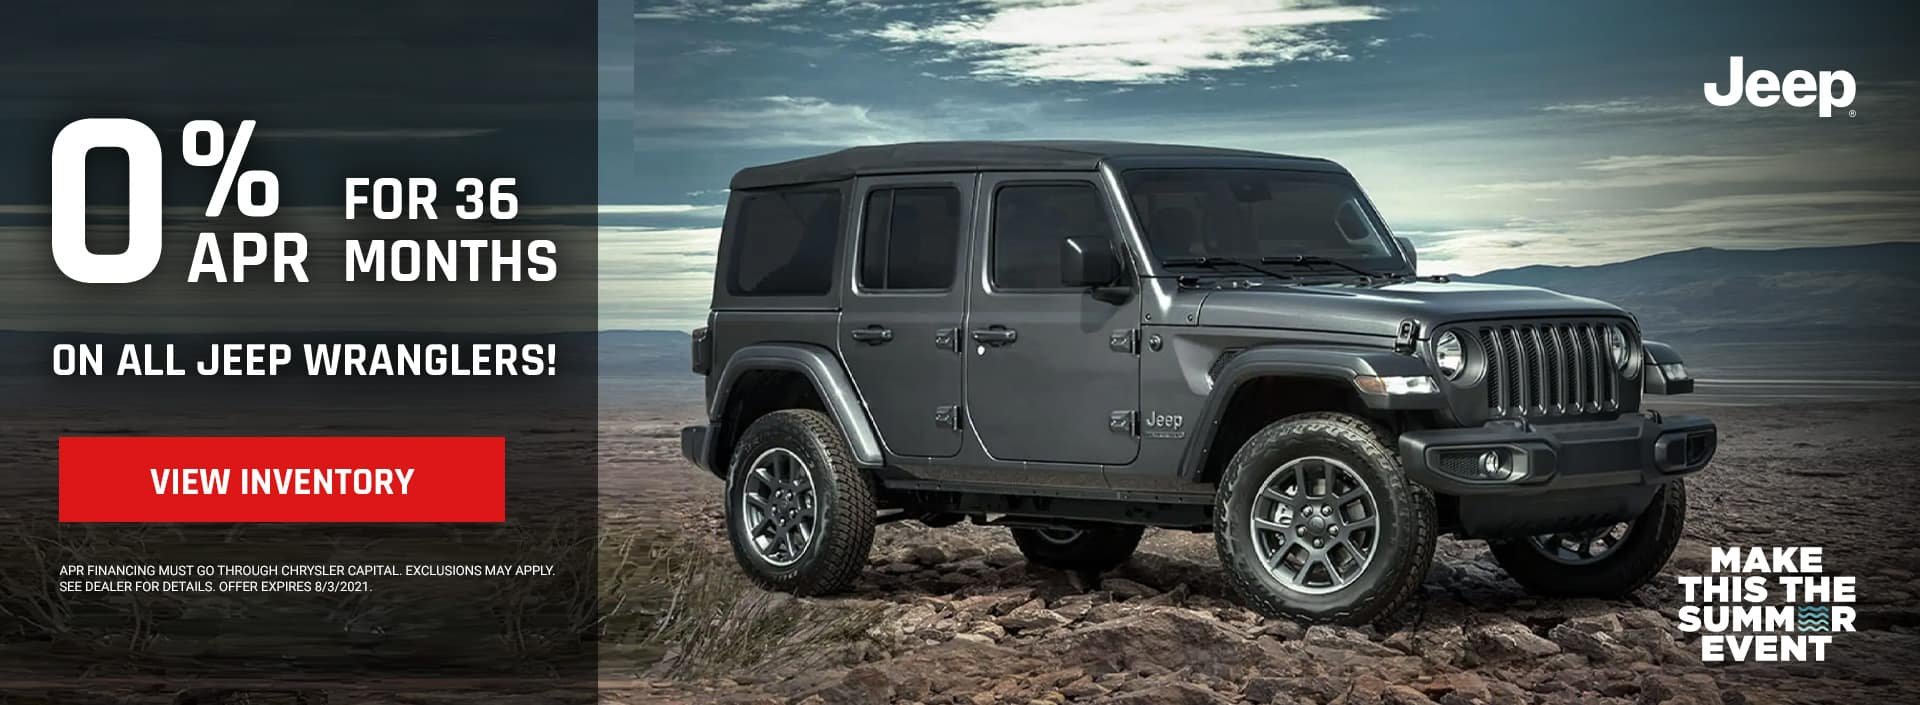 0% for 36 Months on all Jeep Wranglers!